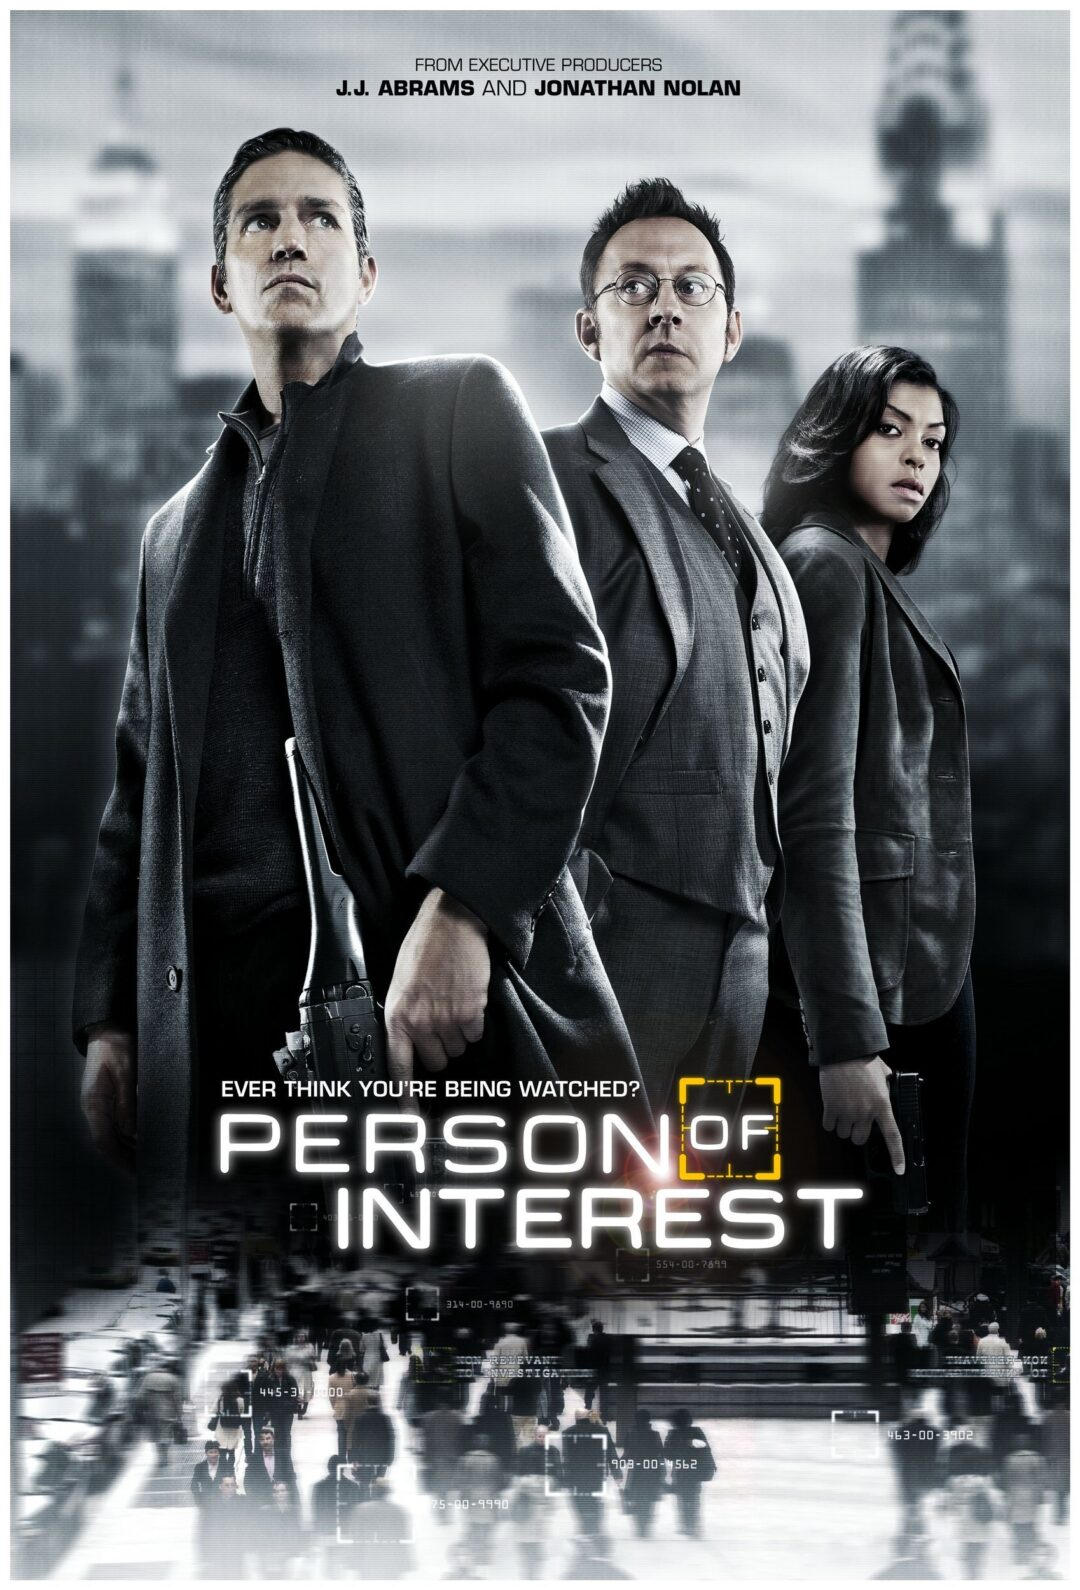 Person of Interest best prime web series